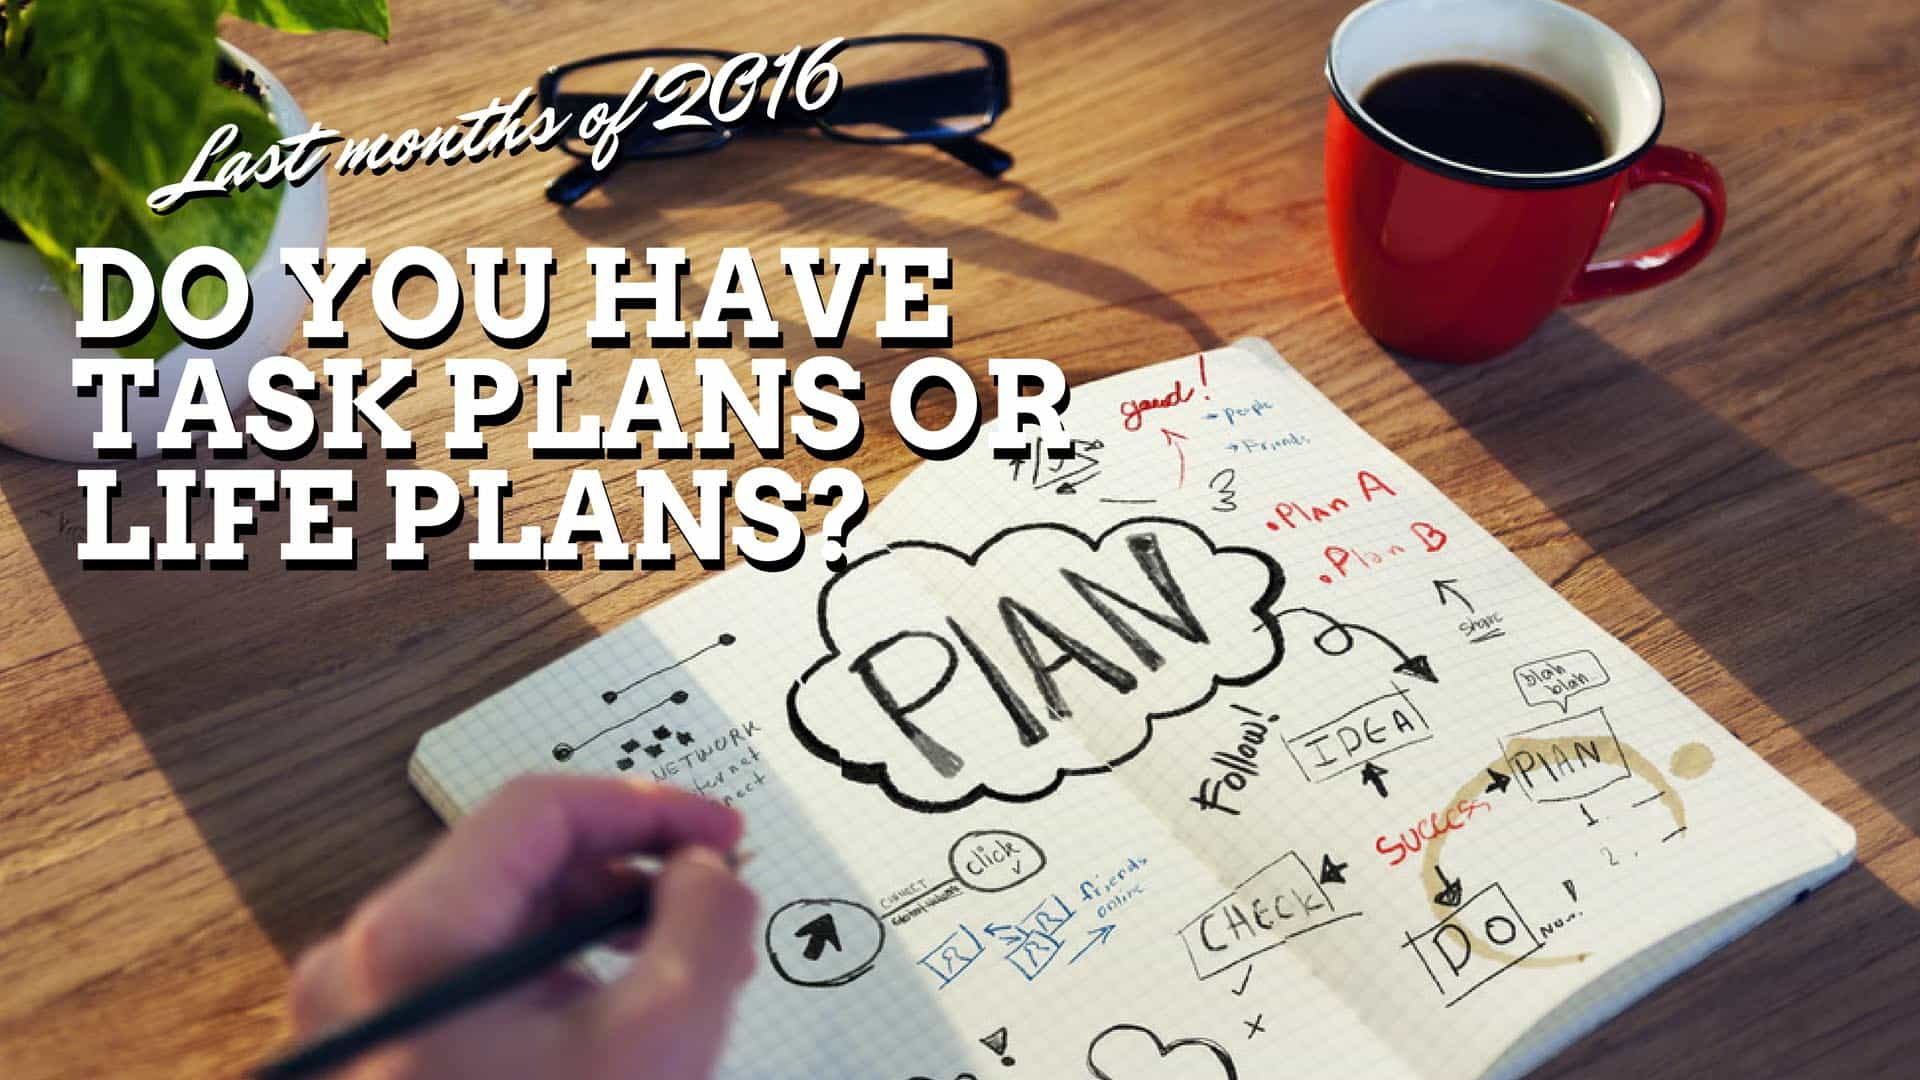 Last Months Of 2016: Do You Have Task Plans Or Life Plans?